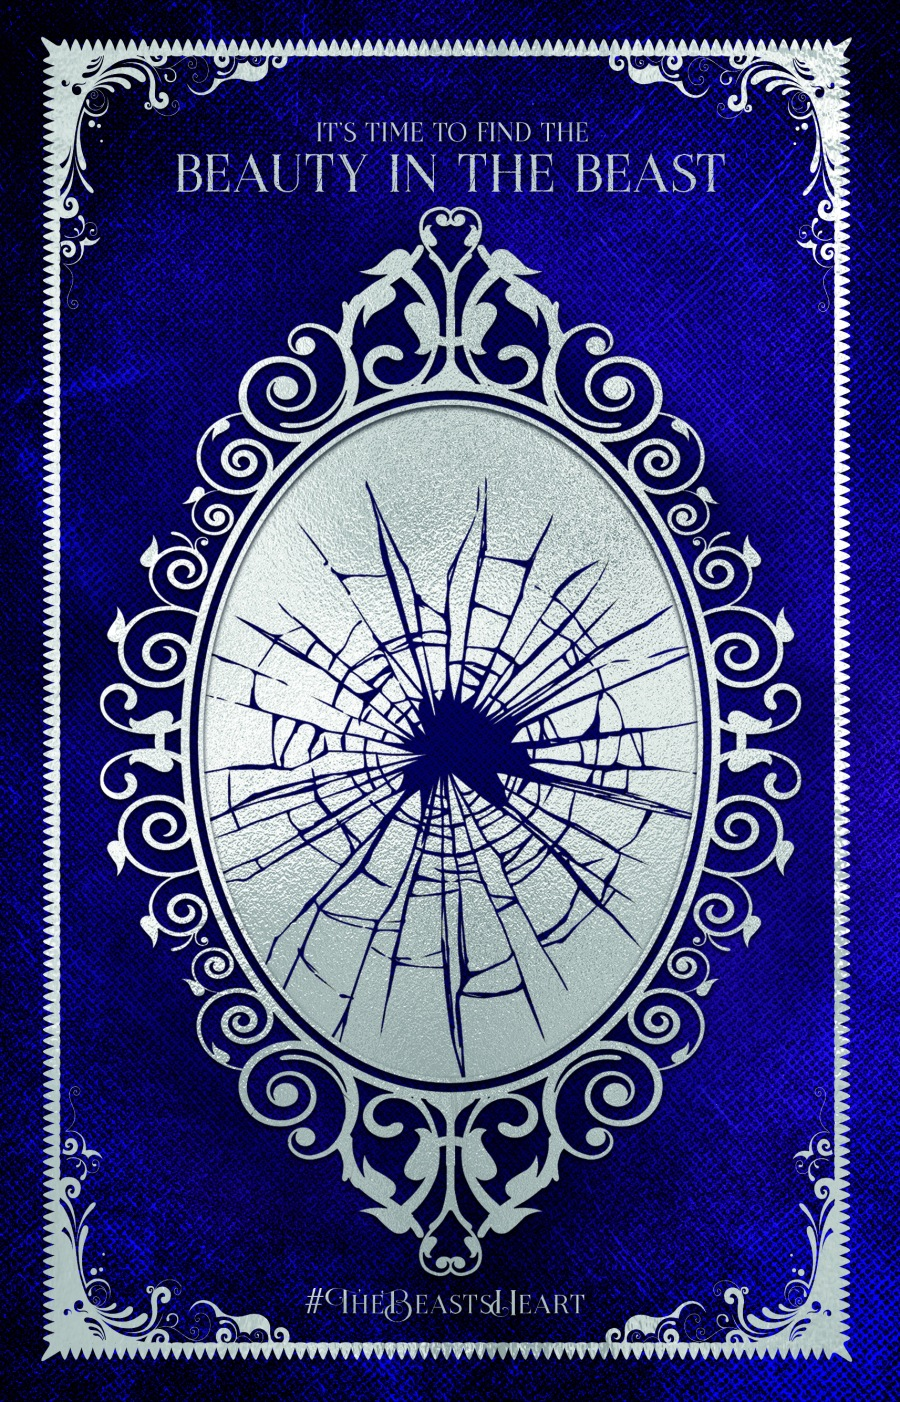 An oval mirror in an ornate frame on a deep blue background. The mirror has been shattered.